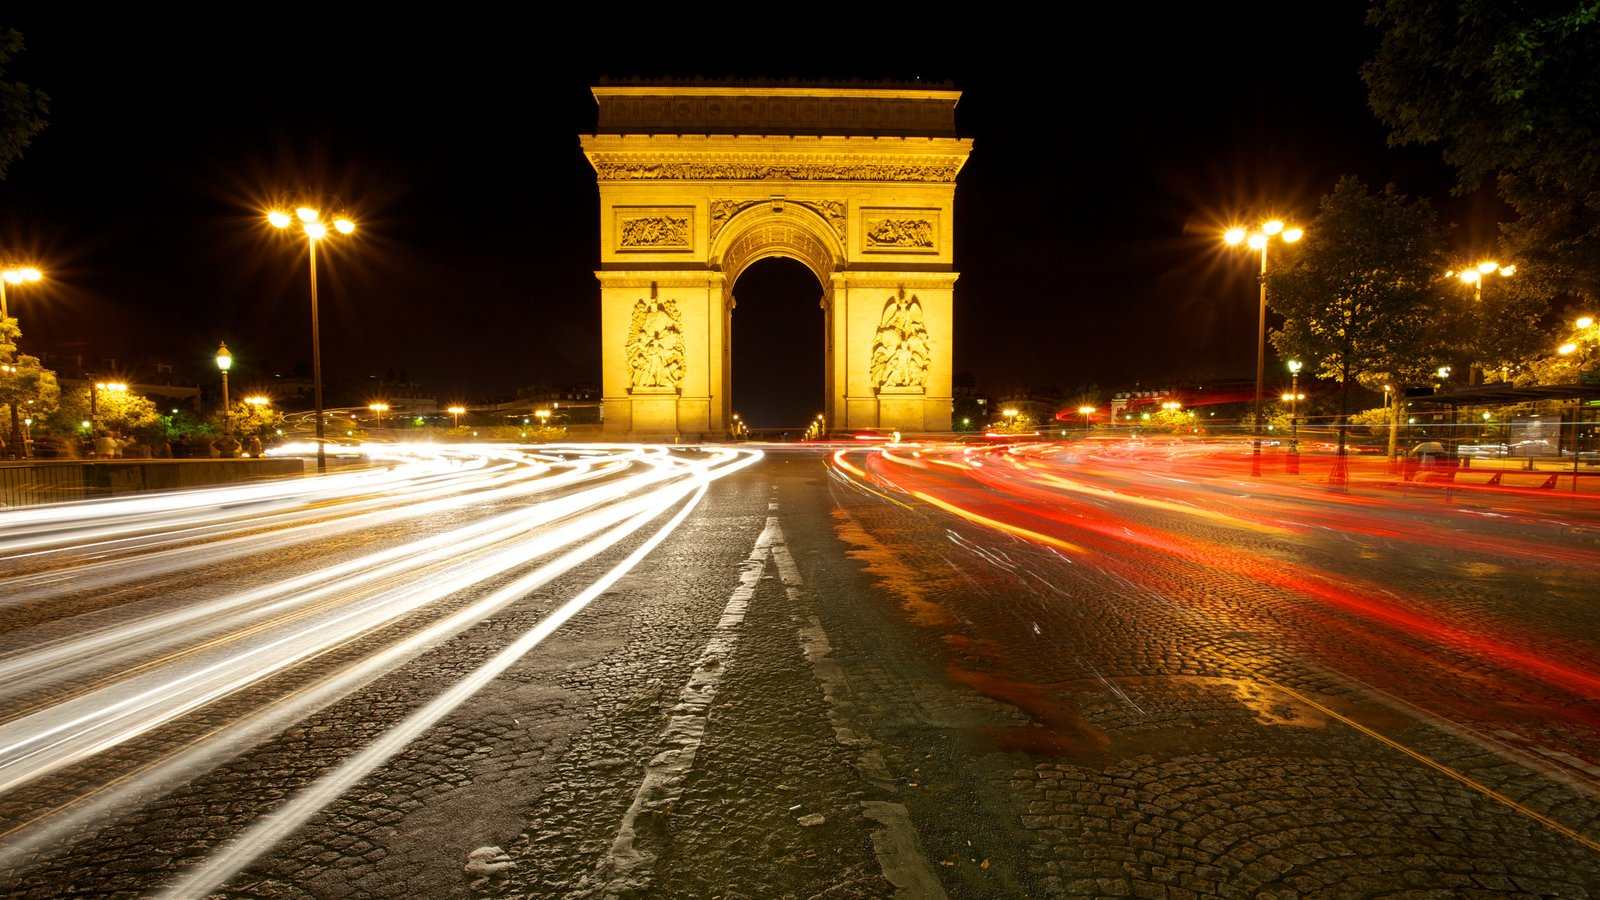 Arc de Triomphe featuring street scenes, heritage architecture and night scenes